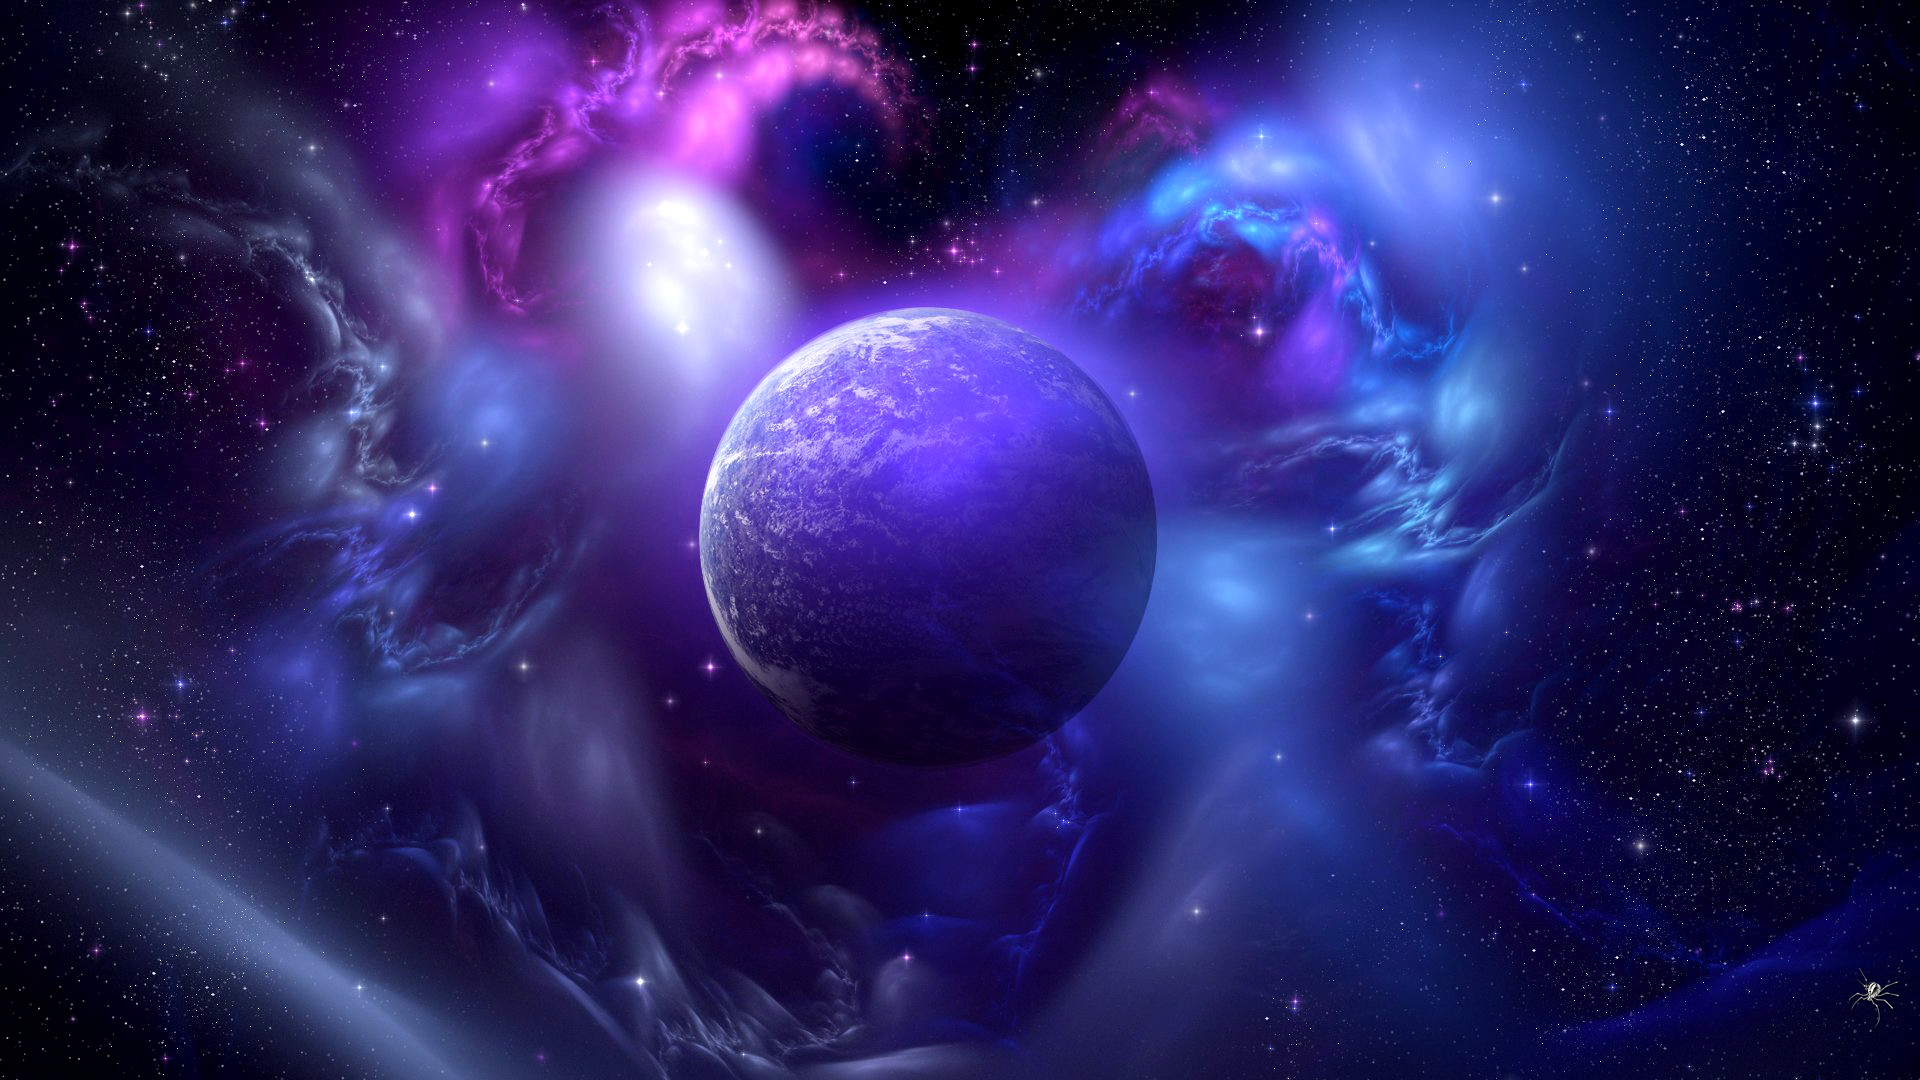 Hd Wallpapers 1080p Space Hd space wallpaper 1920×1080